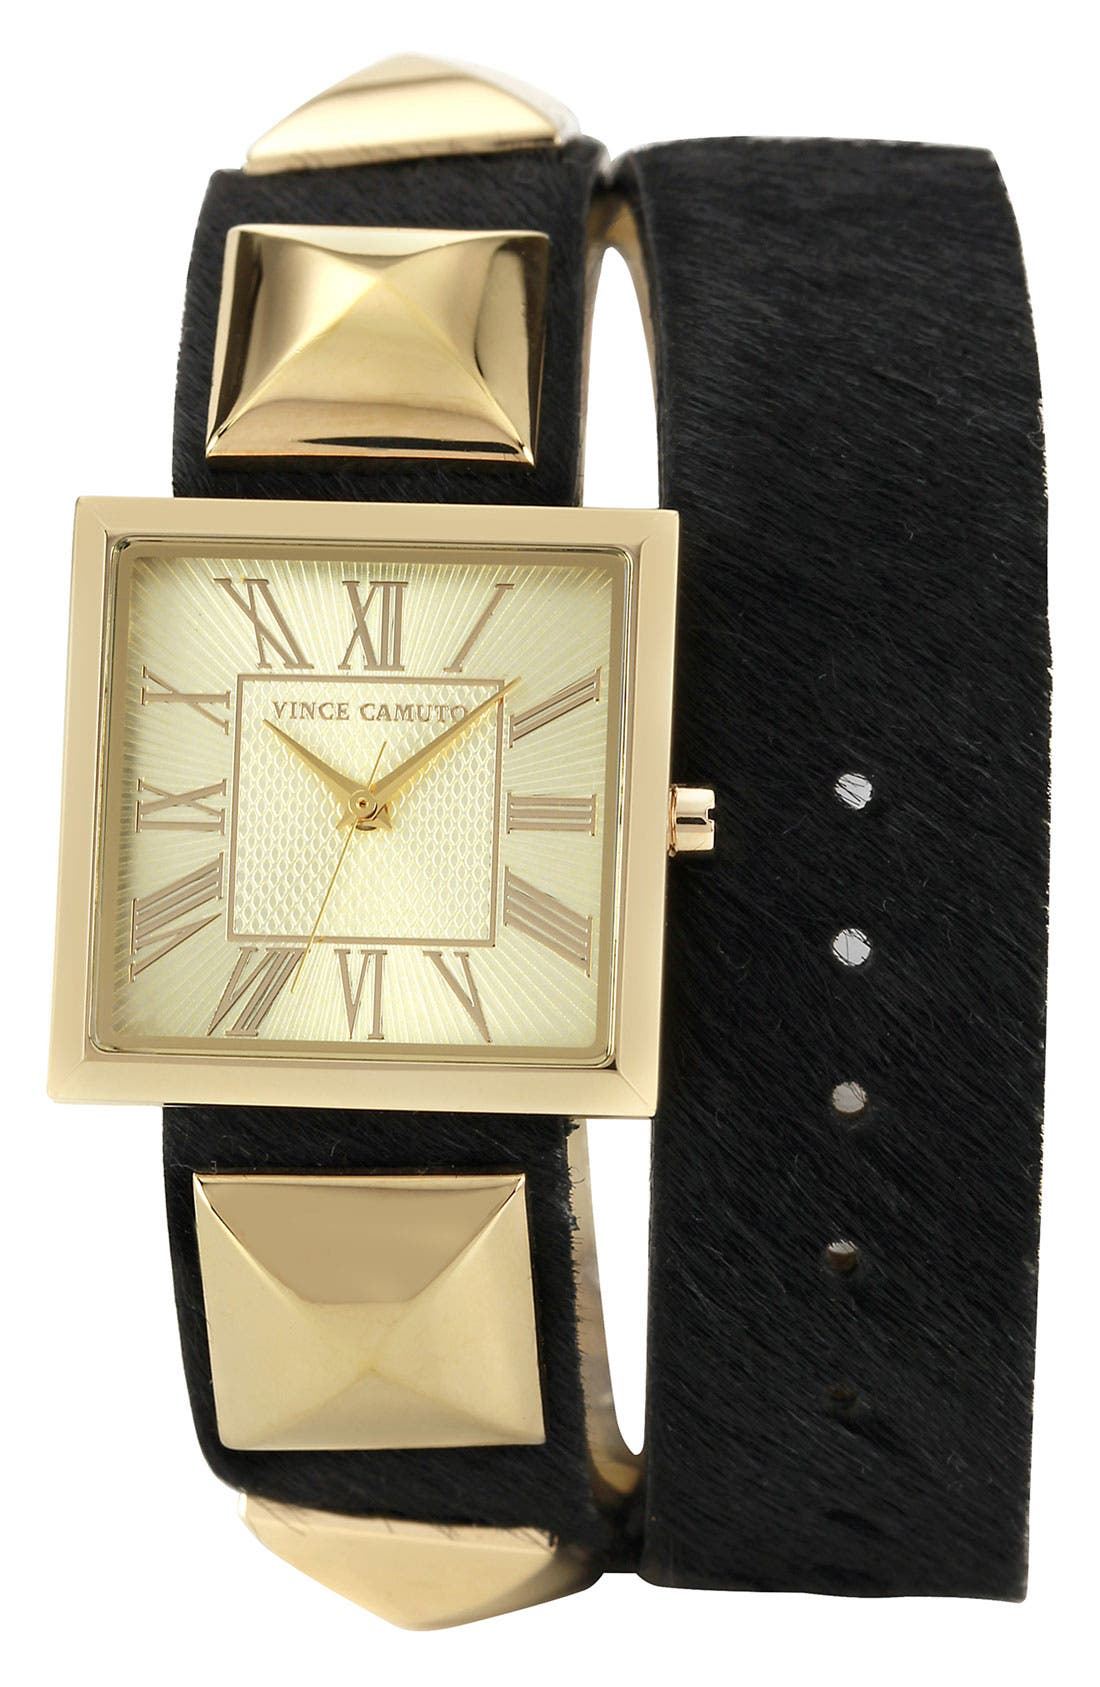 Main Image - Vince Camuto Double Wrap Leather Strap Watch, 27mm